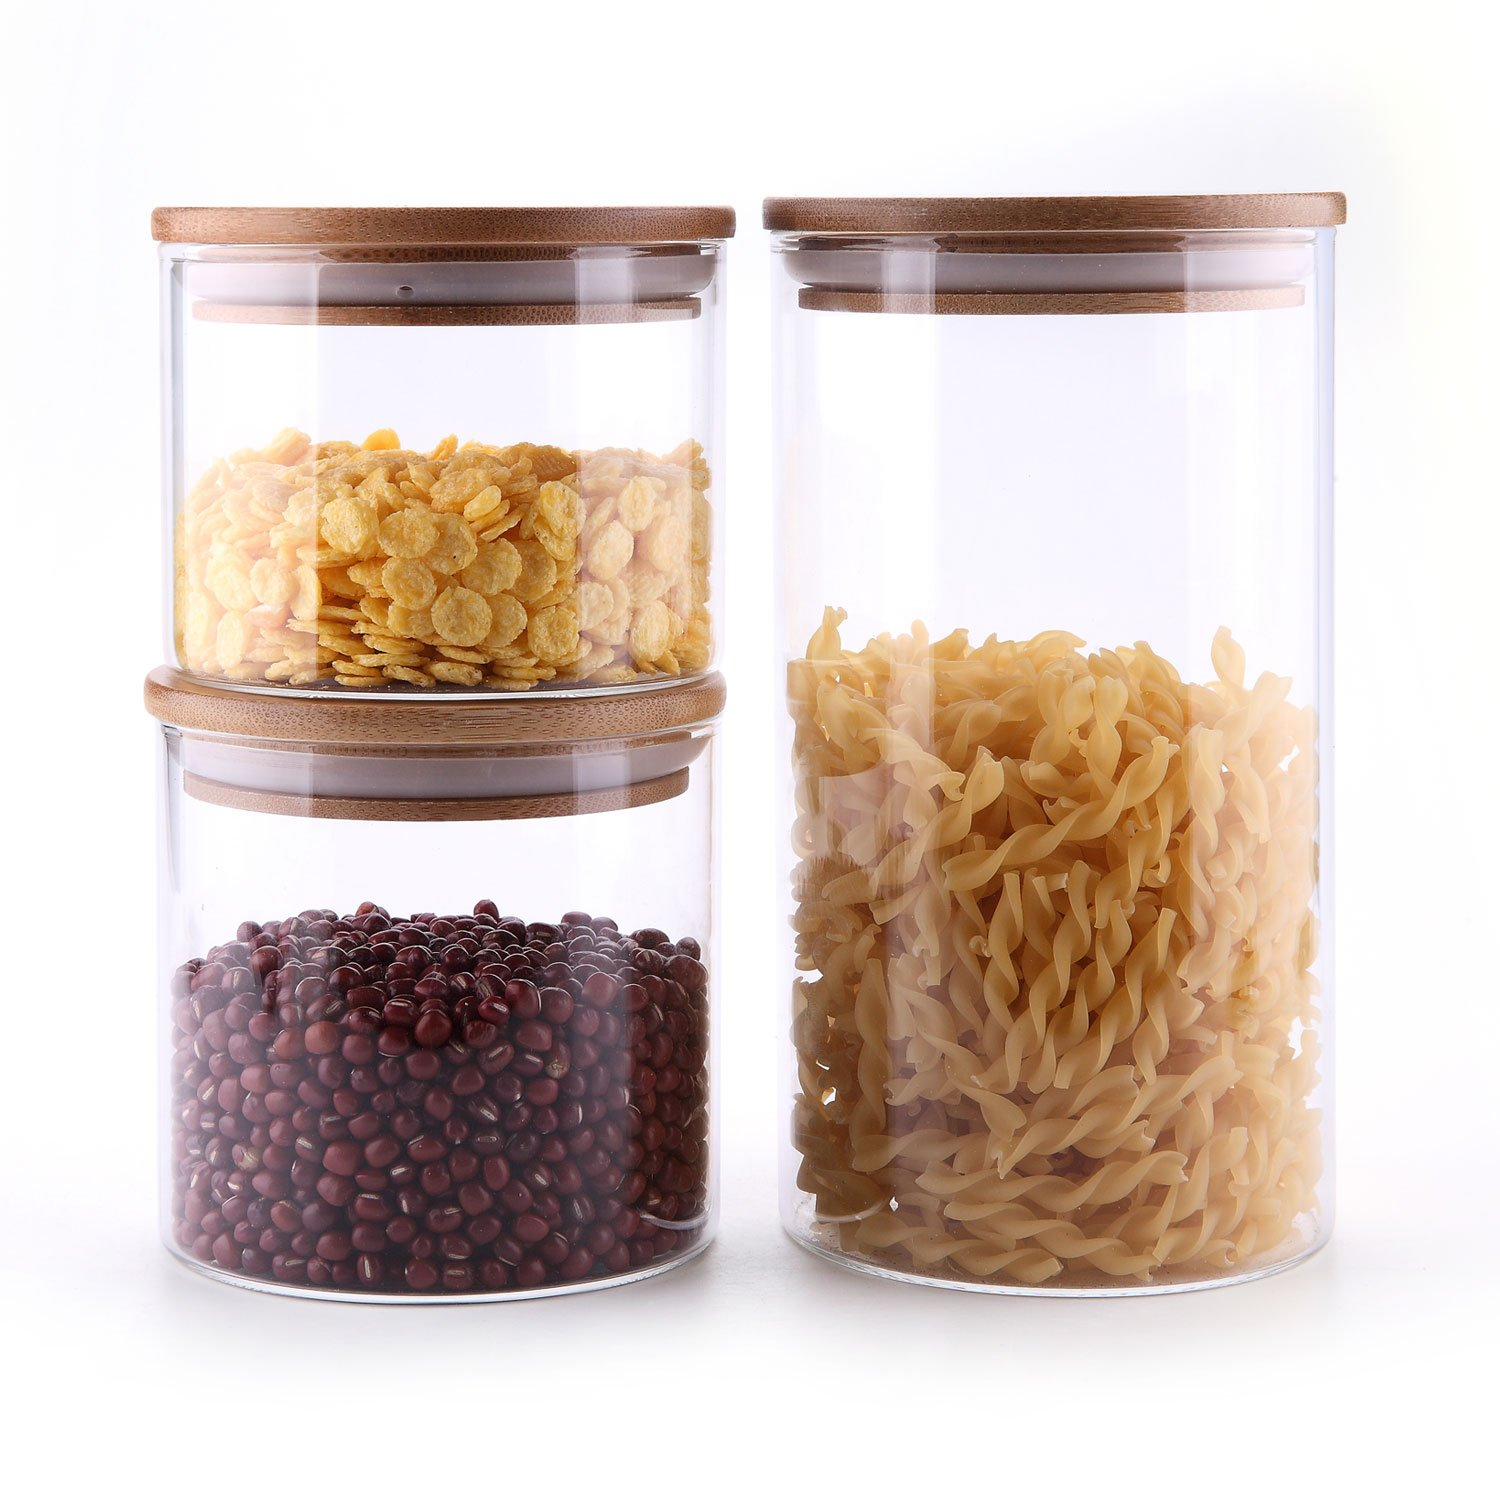 MuciHom Airtight Canisters for Bulk Food Storage Set of 3 - 17/22/43oz, BPA Free High Borosilicate Glass Cookies Jar with Bamboo Lid, Cylinder Cereal Container with Sealing